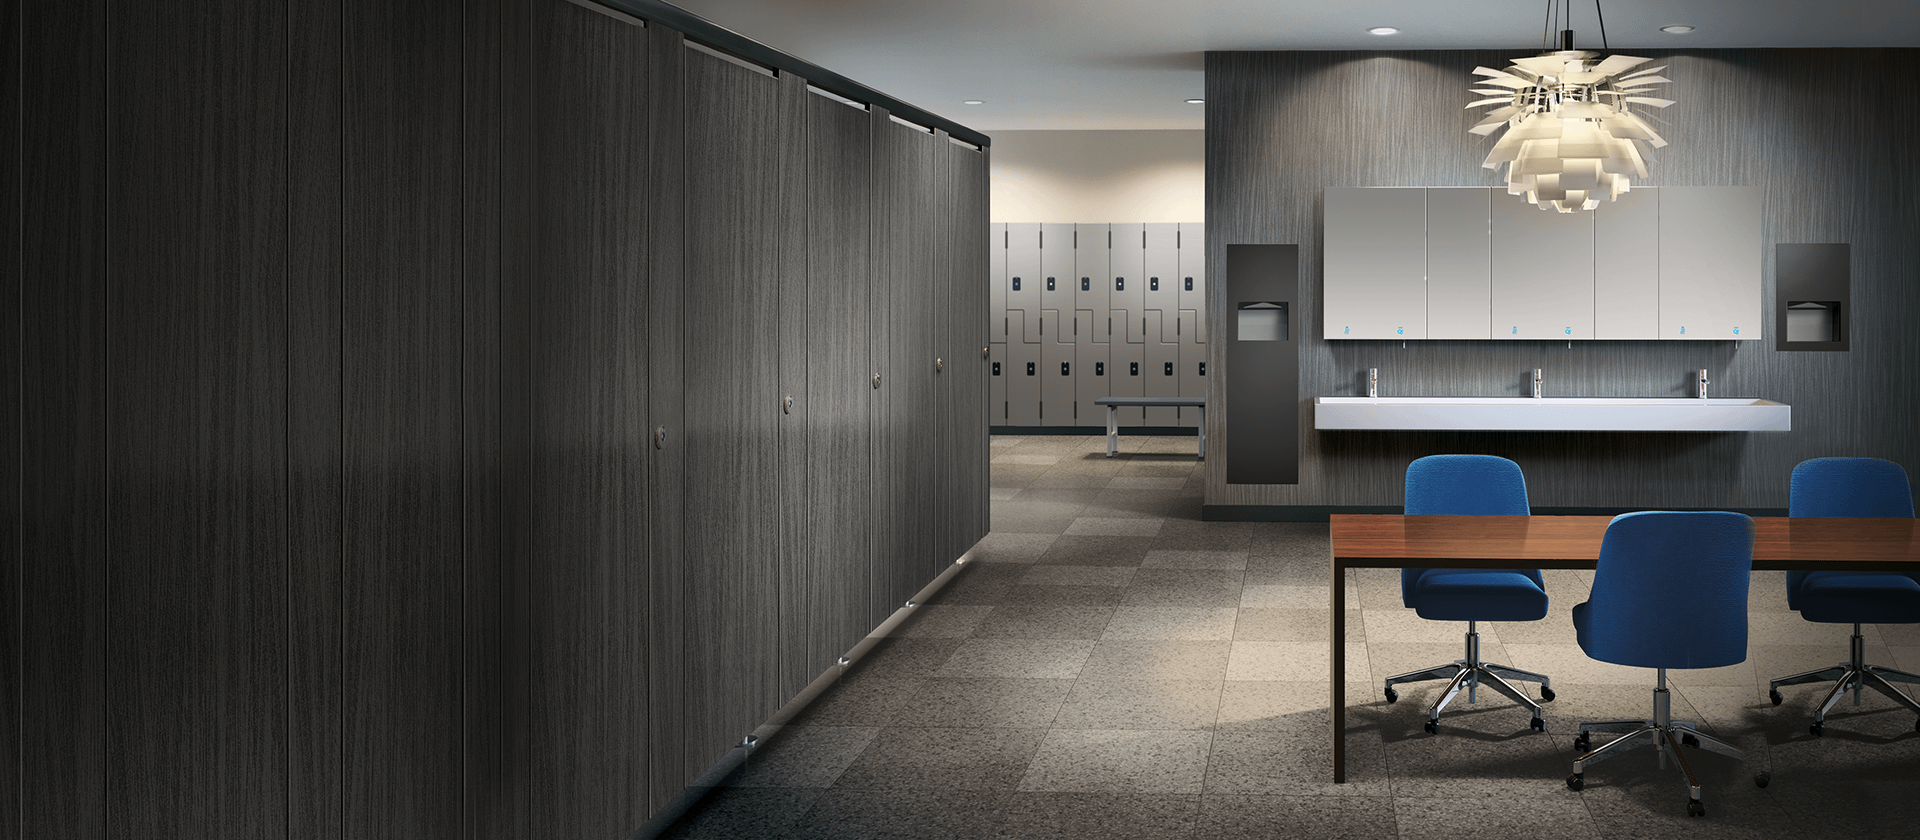 Rendering of a conference room